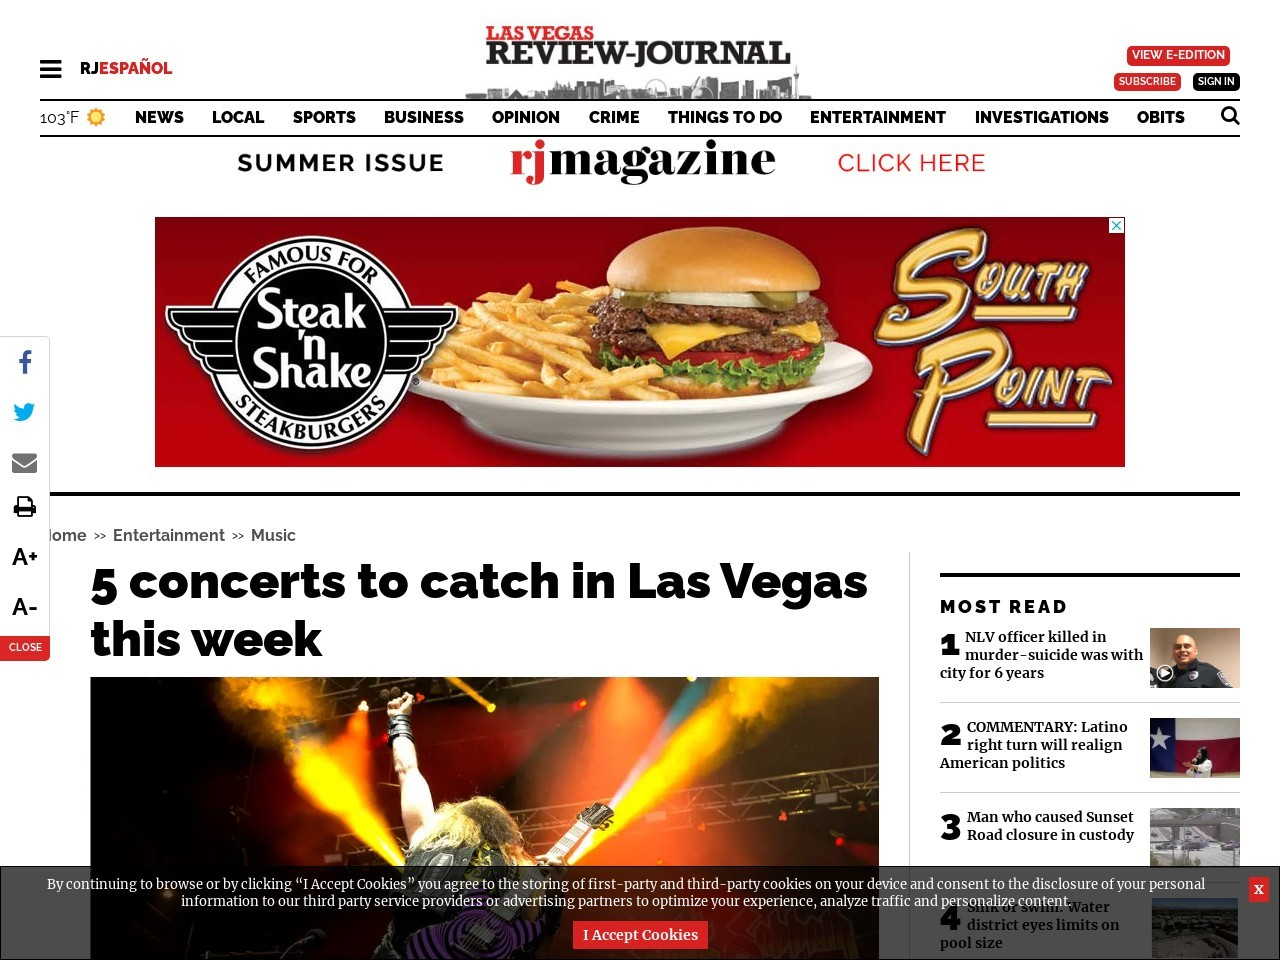 5 concerts to catch in Las Vegas this week